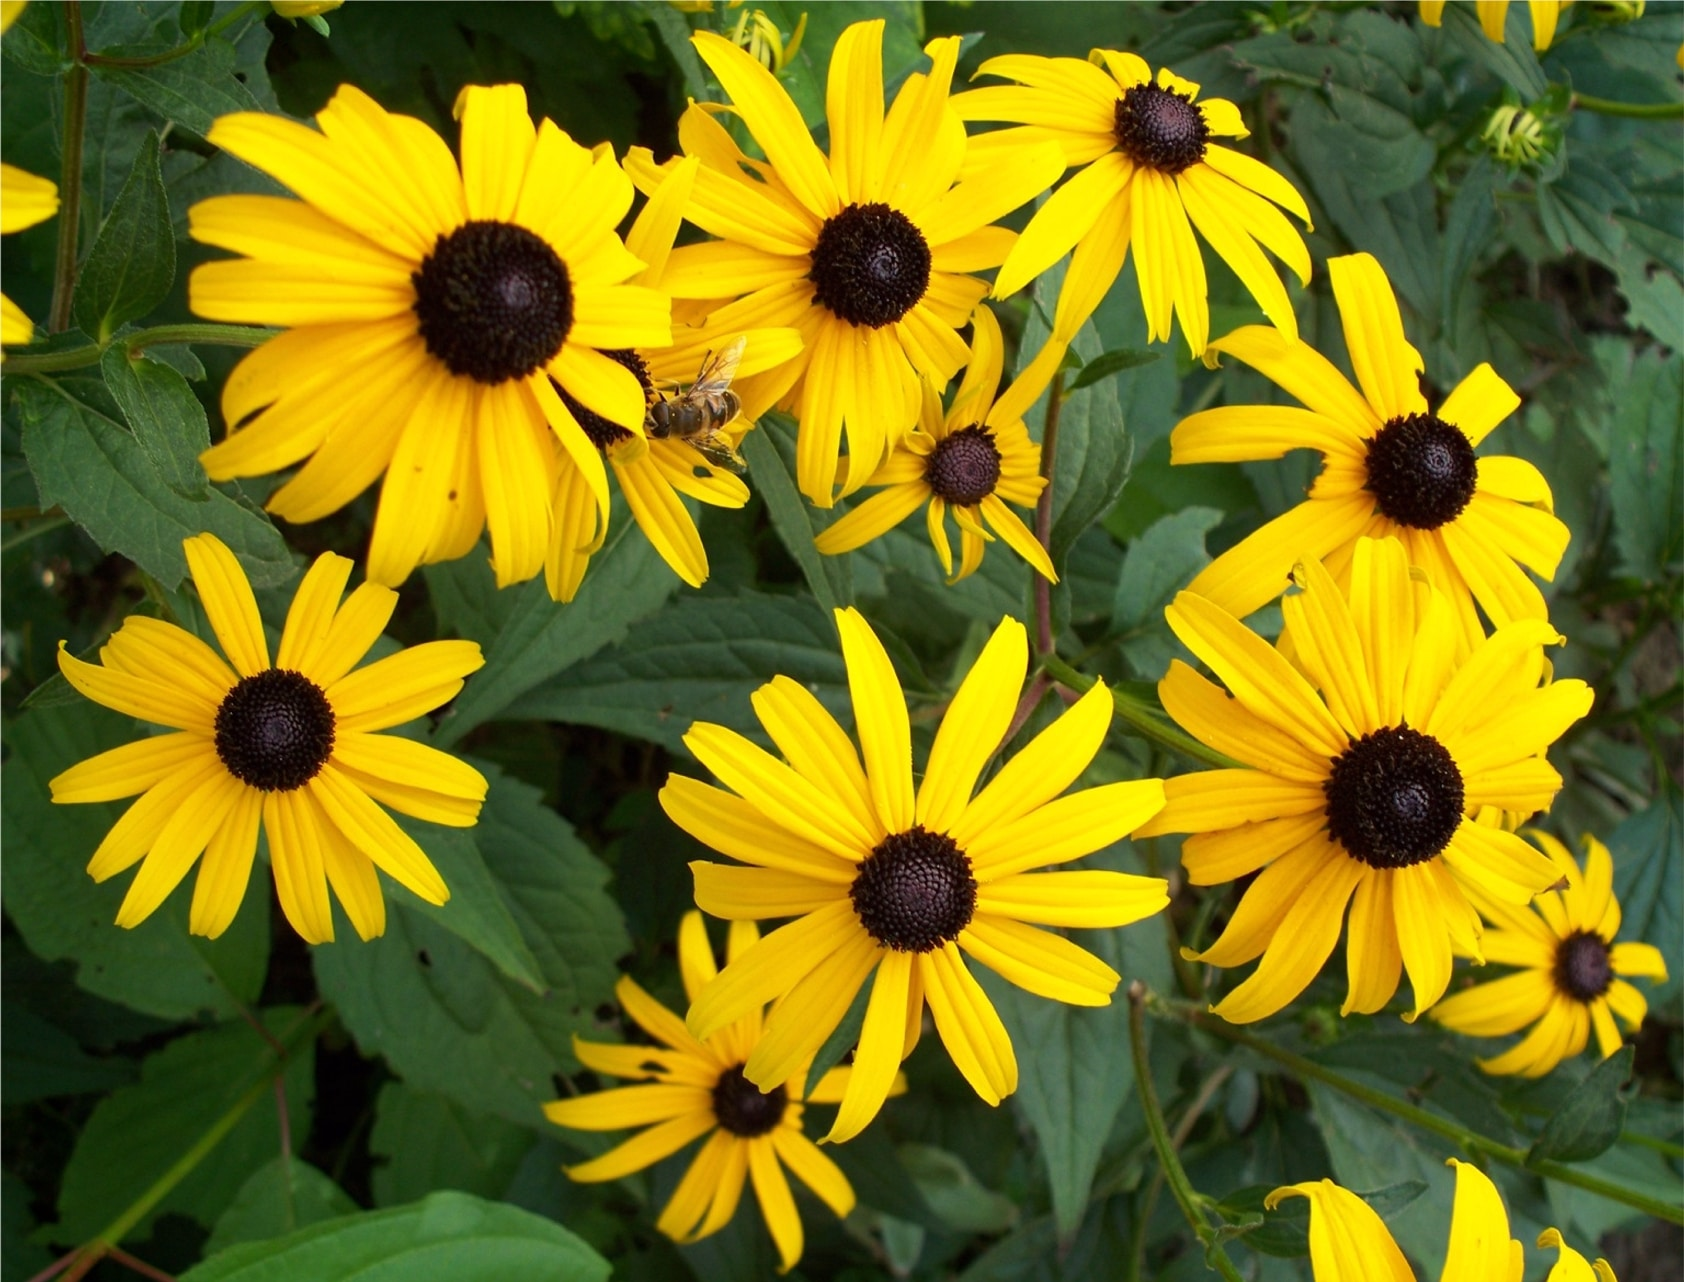 https://gclc.ca/wp-content/uploads/2015/07/Rudbeckia_with_insect.jpg